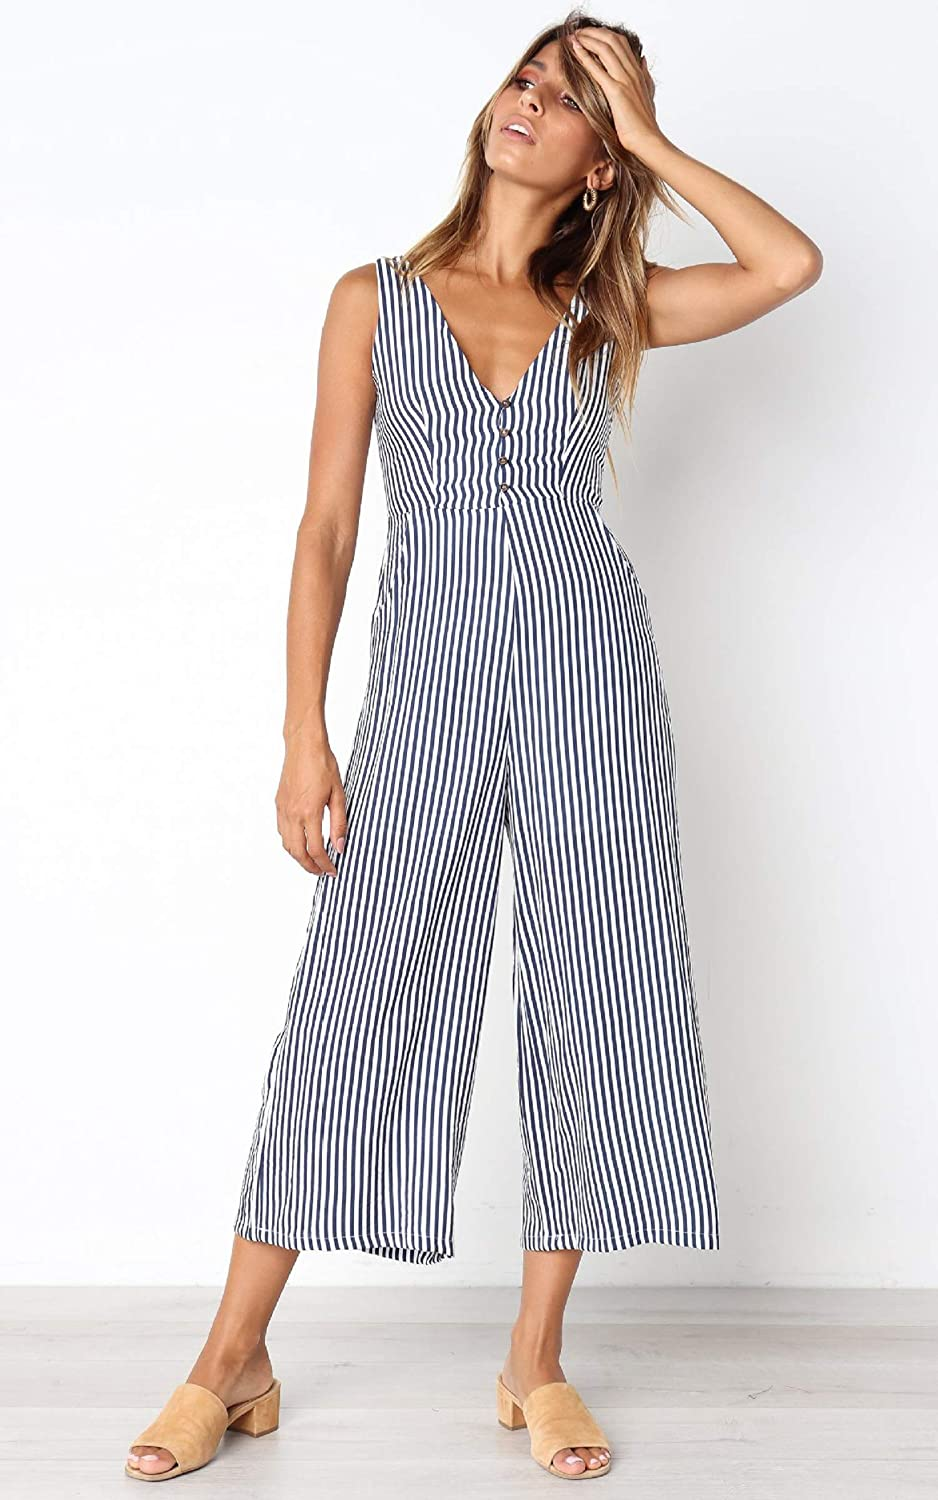 Women Long Jumpsuits and Rompers Solid Color Short Sleeve V Neck Slef Belted Overalls Casual Summer Wide Leg Pants Rompers